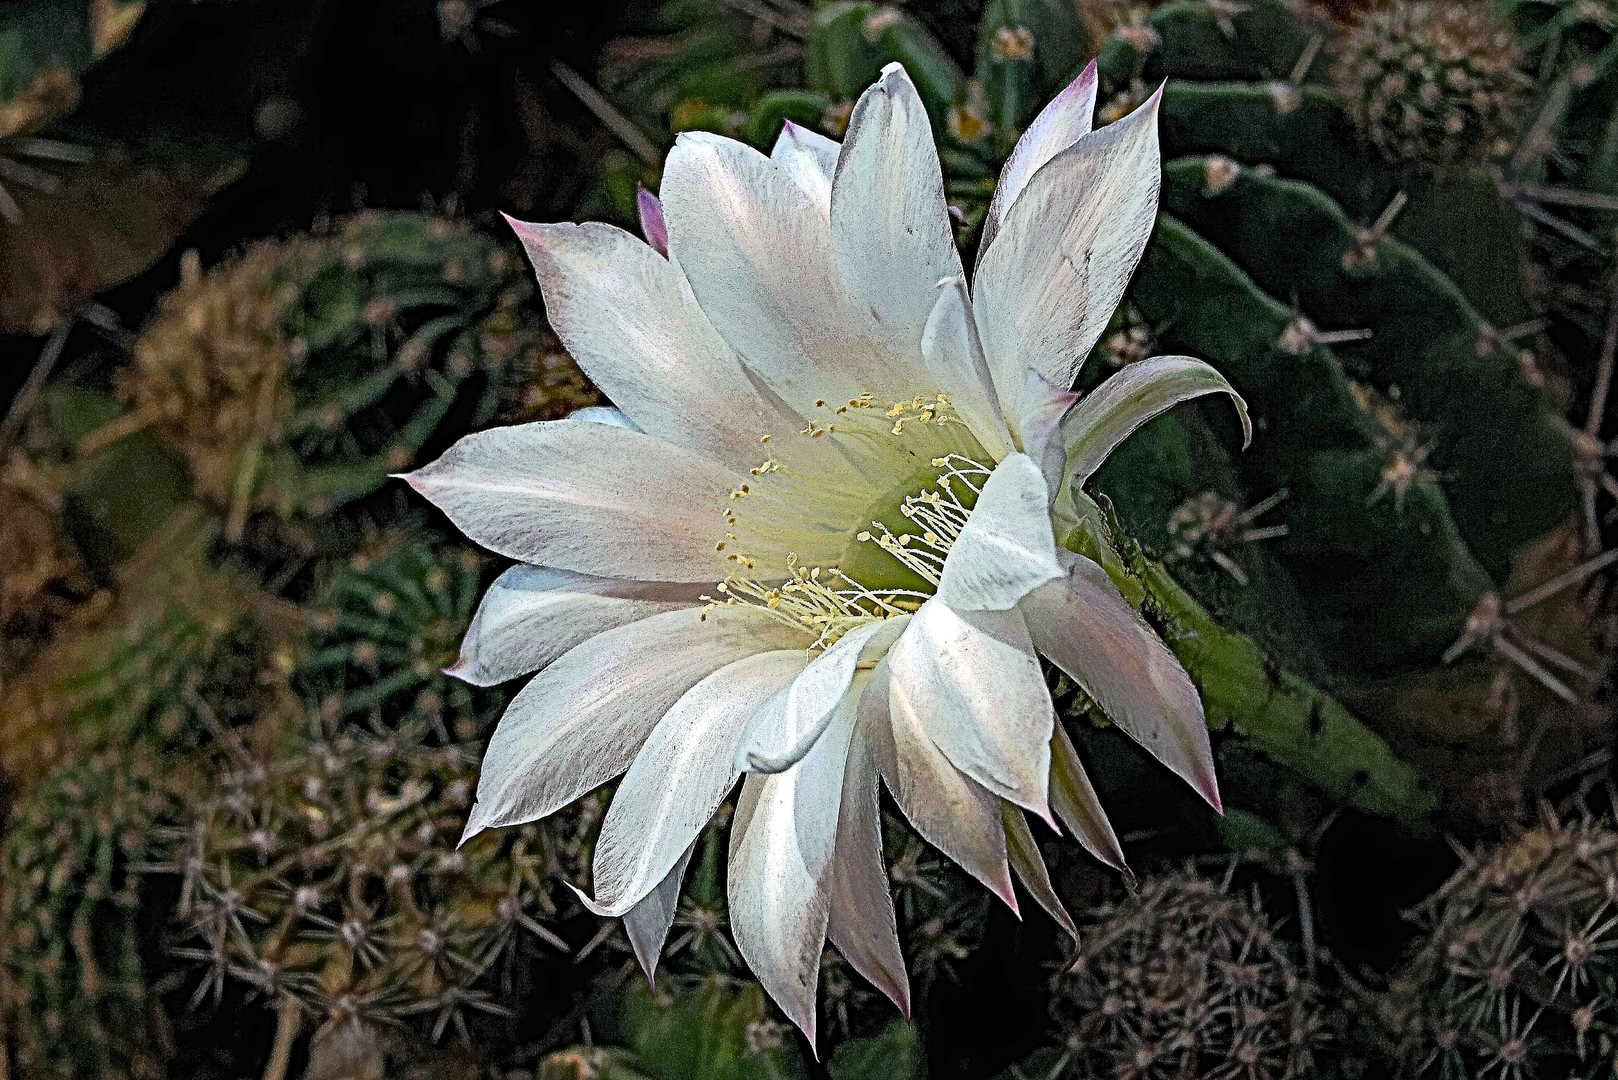 The Beauty of Cactus